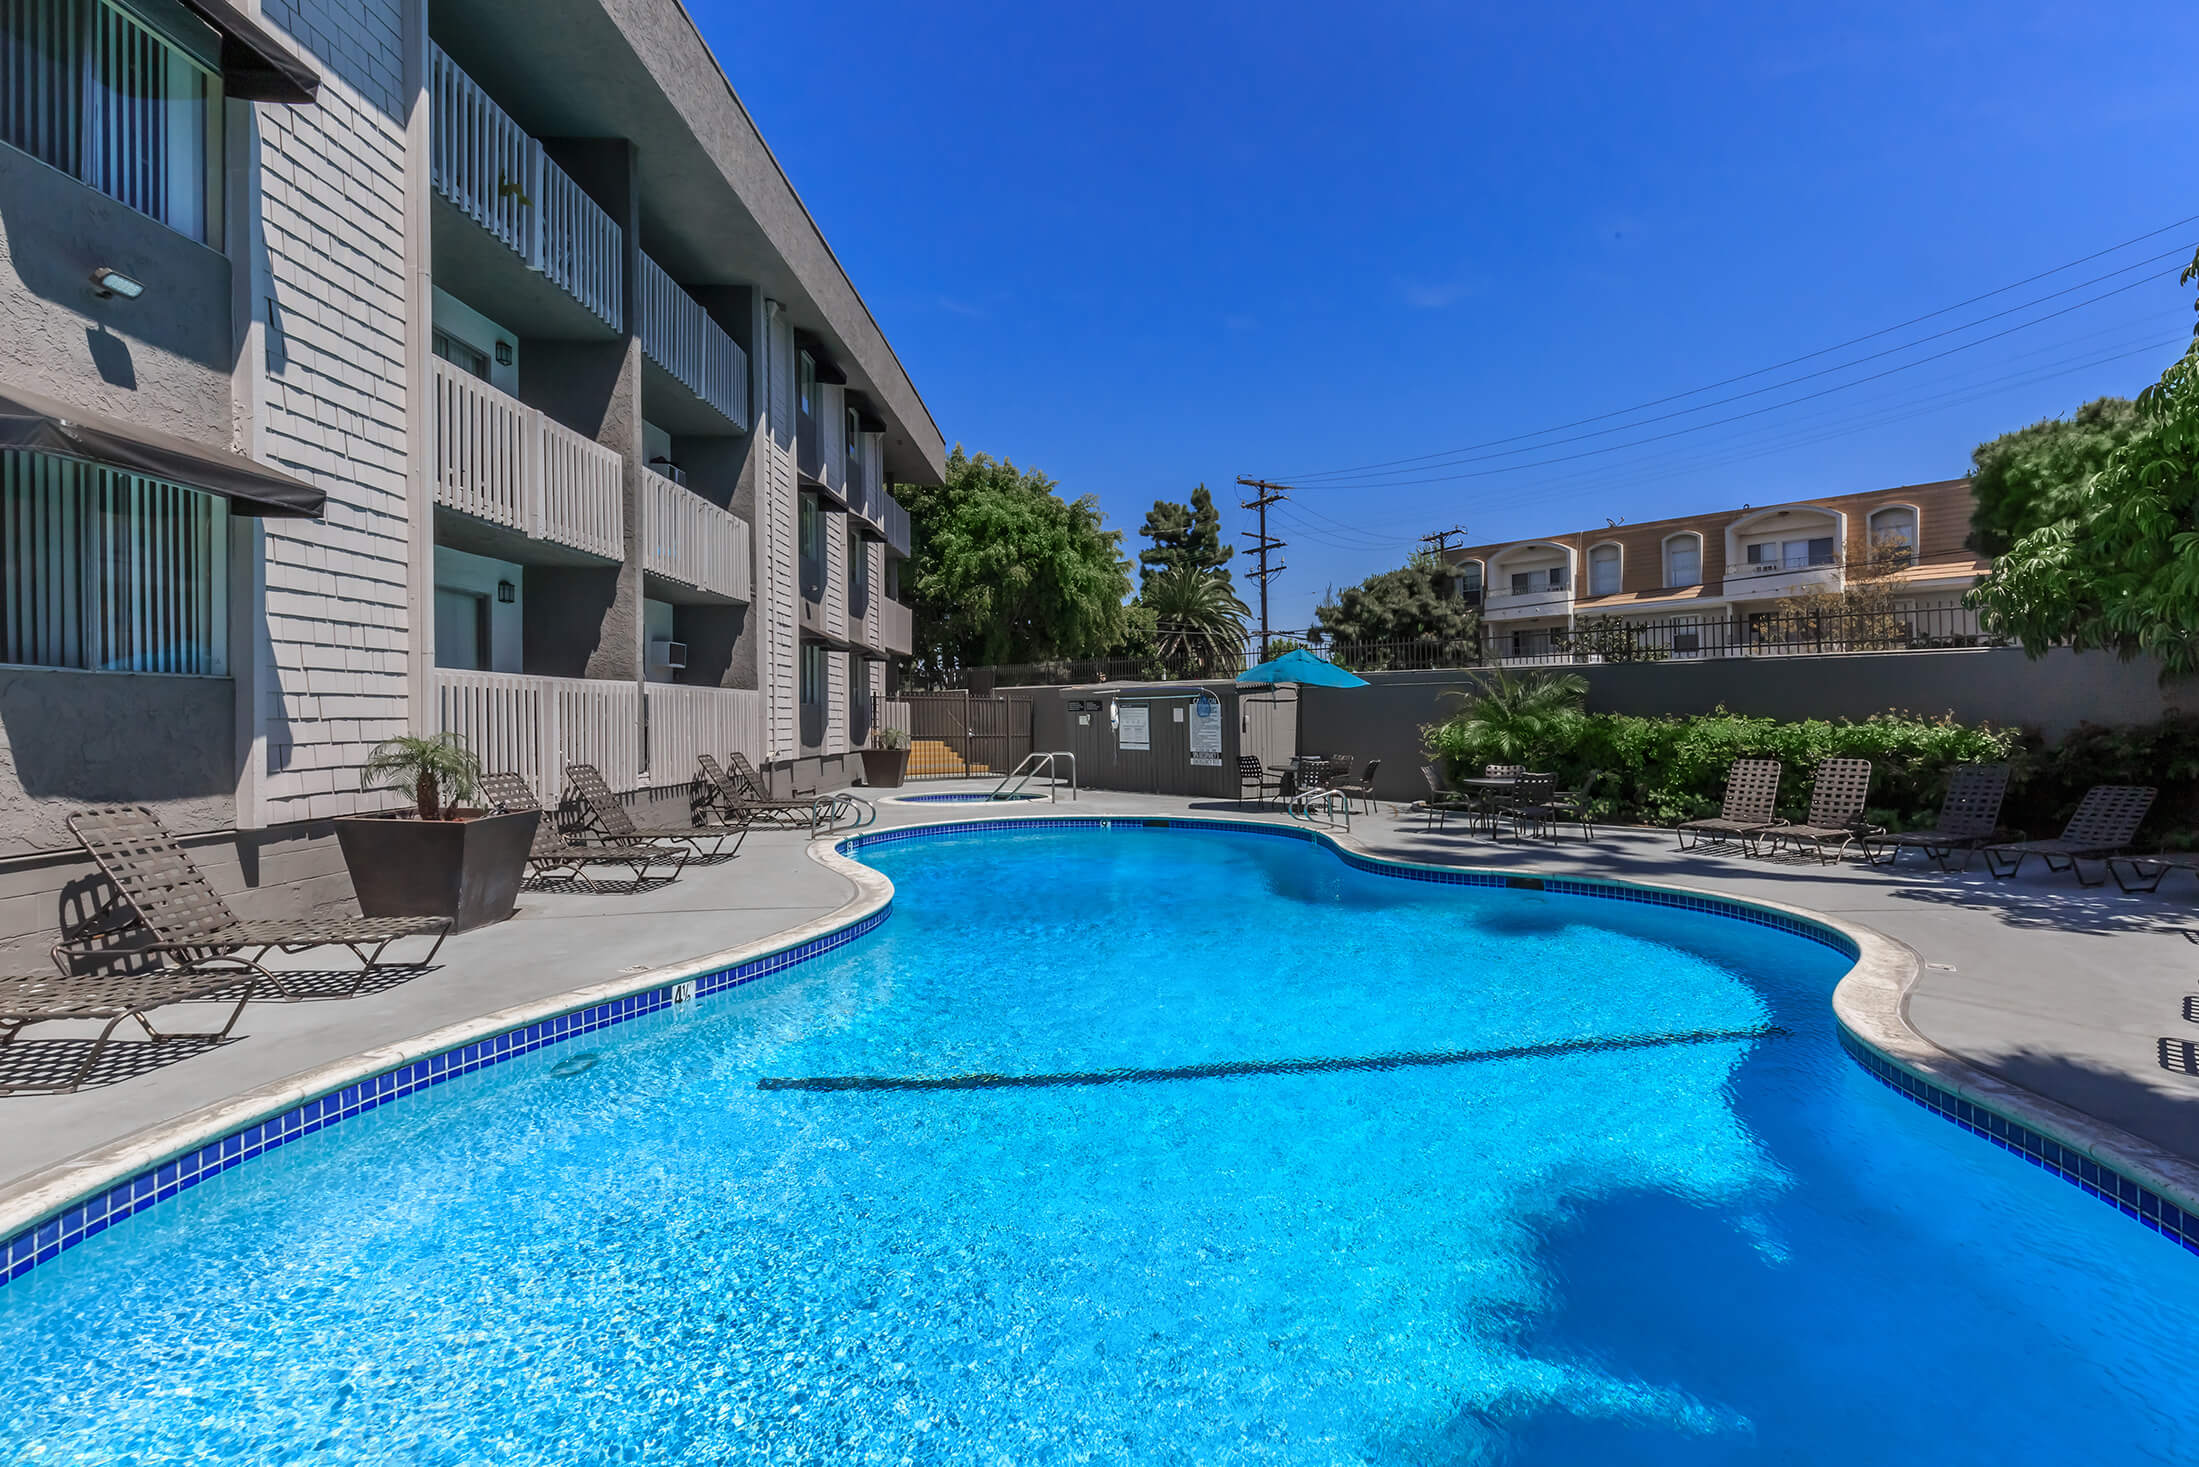 Pacific View Apartment Homes Apartments in Long Beach CA